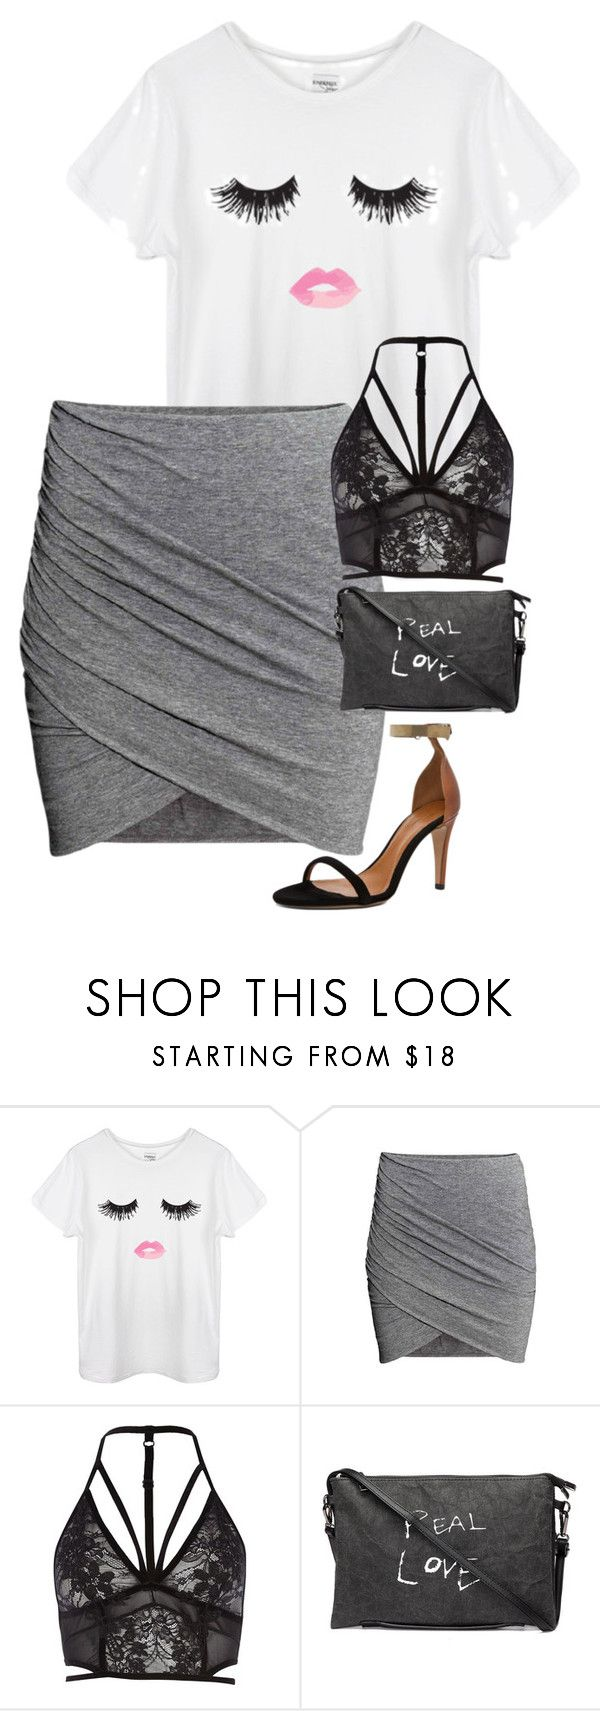 """""""ootd casual date night"""" by courtney13w ❤ liked on Polyvore featuring River Island and Isabel Marant"""